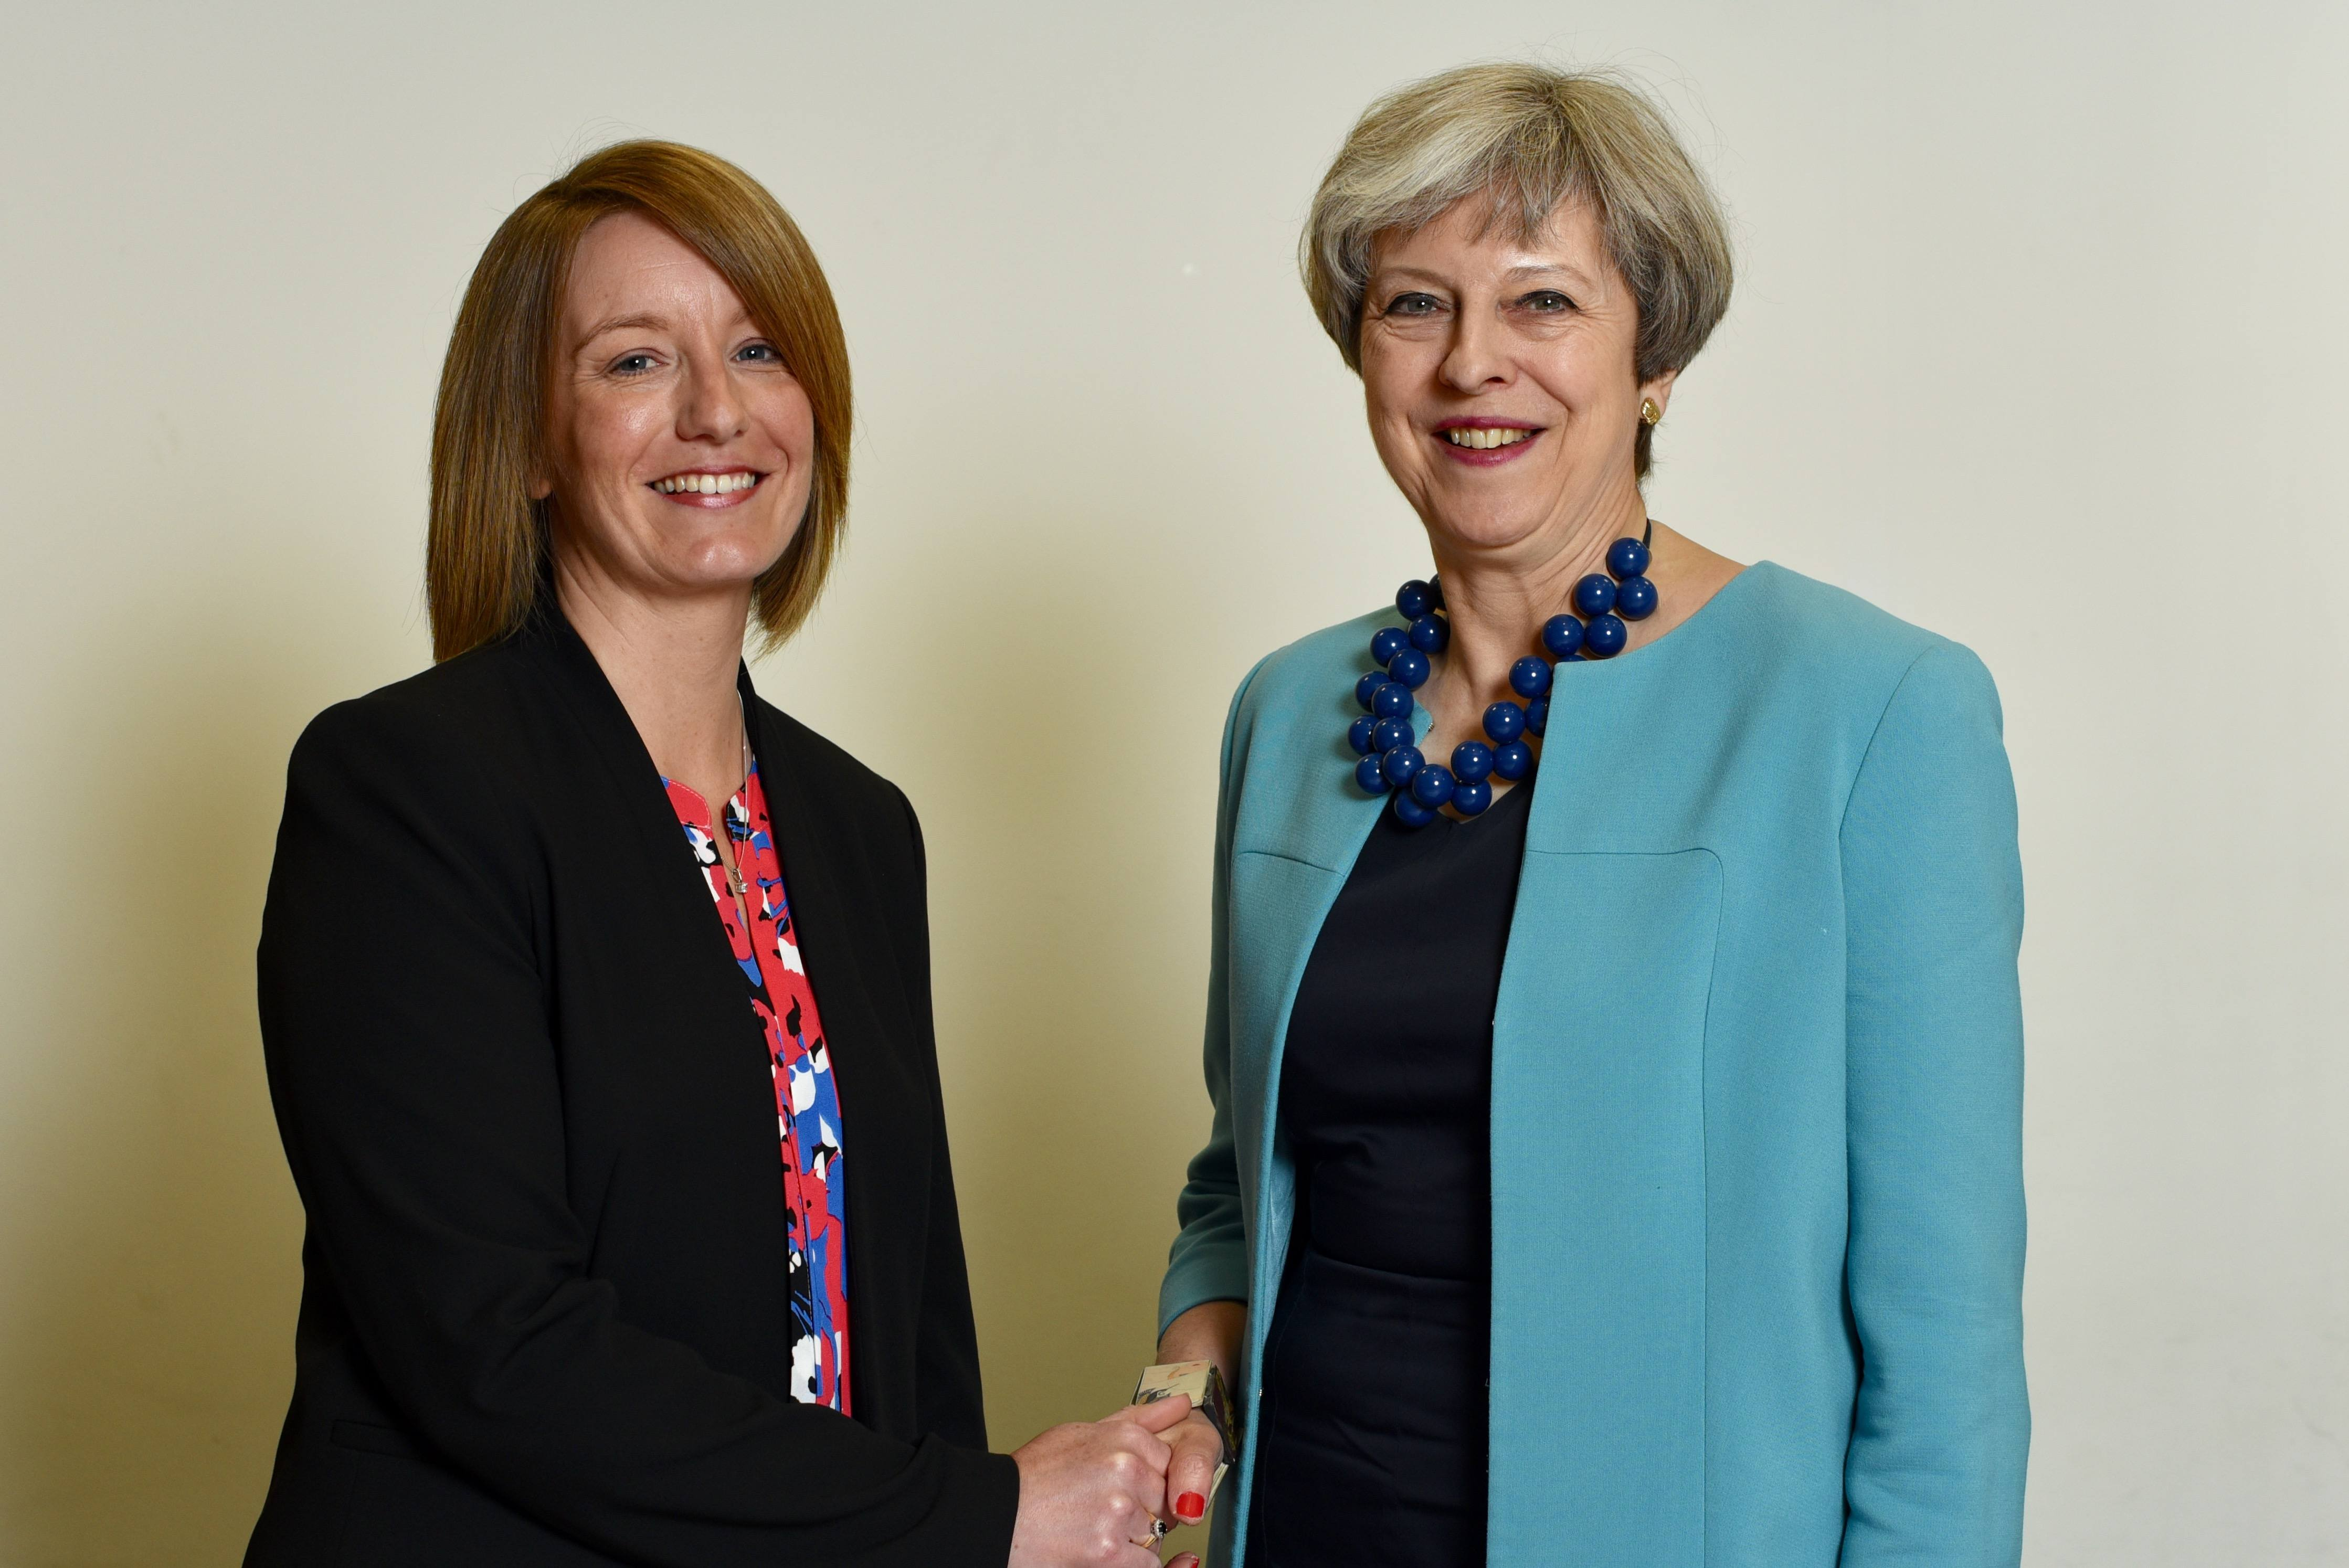 Caroline Moon with the Prime Minister